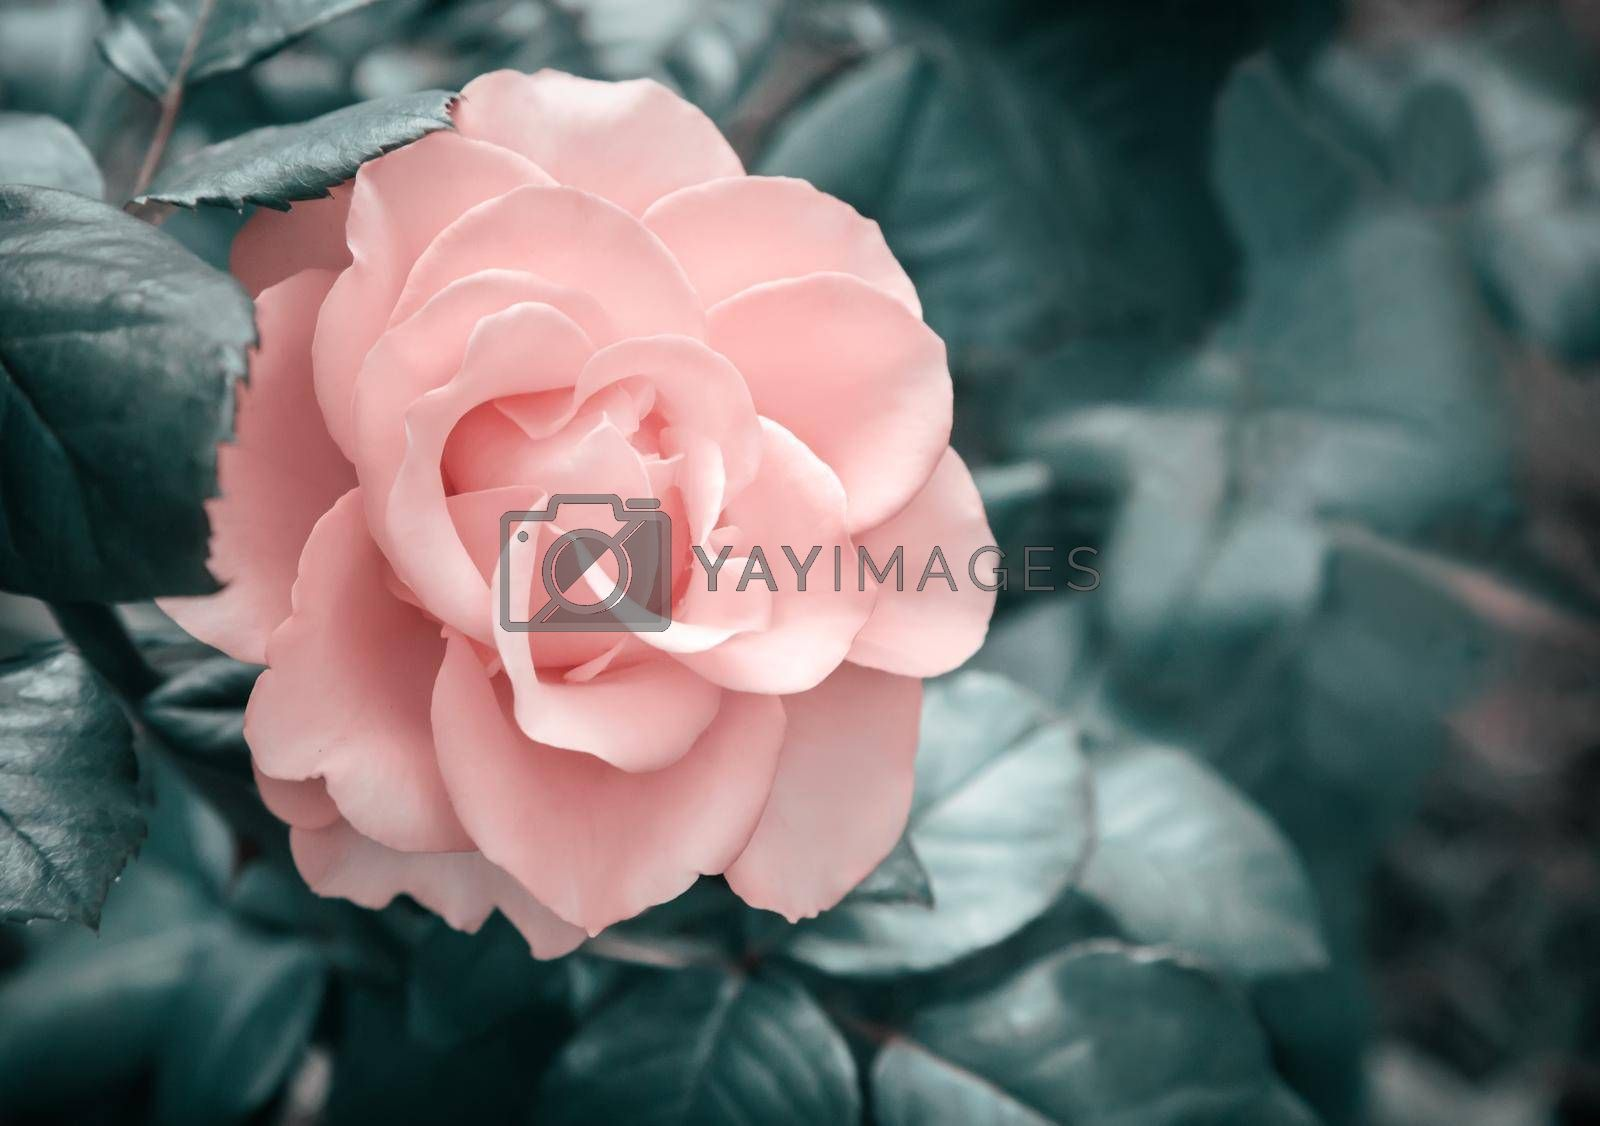 Beautiful pink flower tea-hybrid rose , blooming in the garden . Photographed close-up .